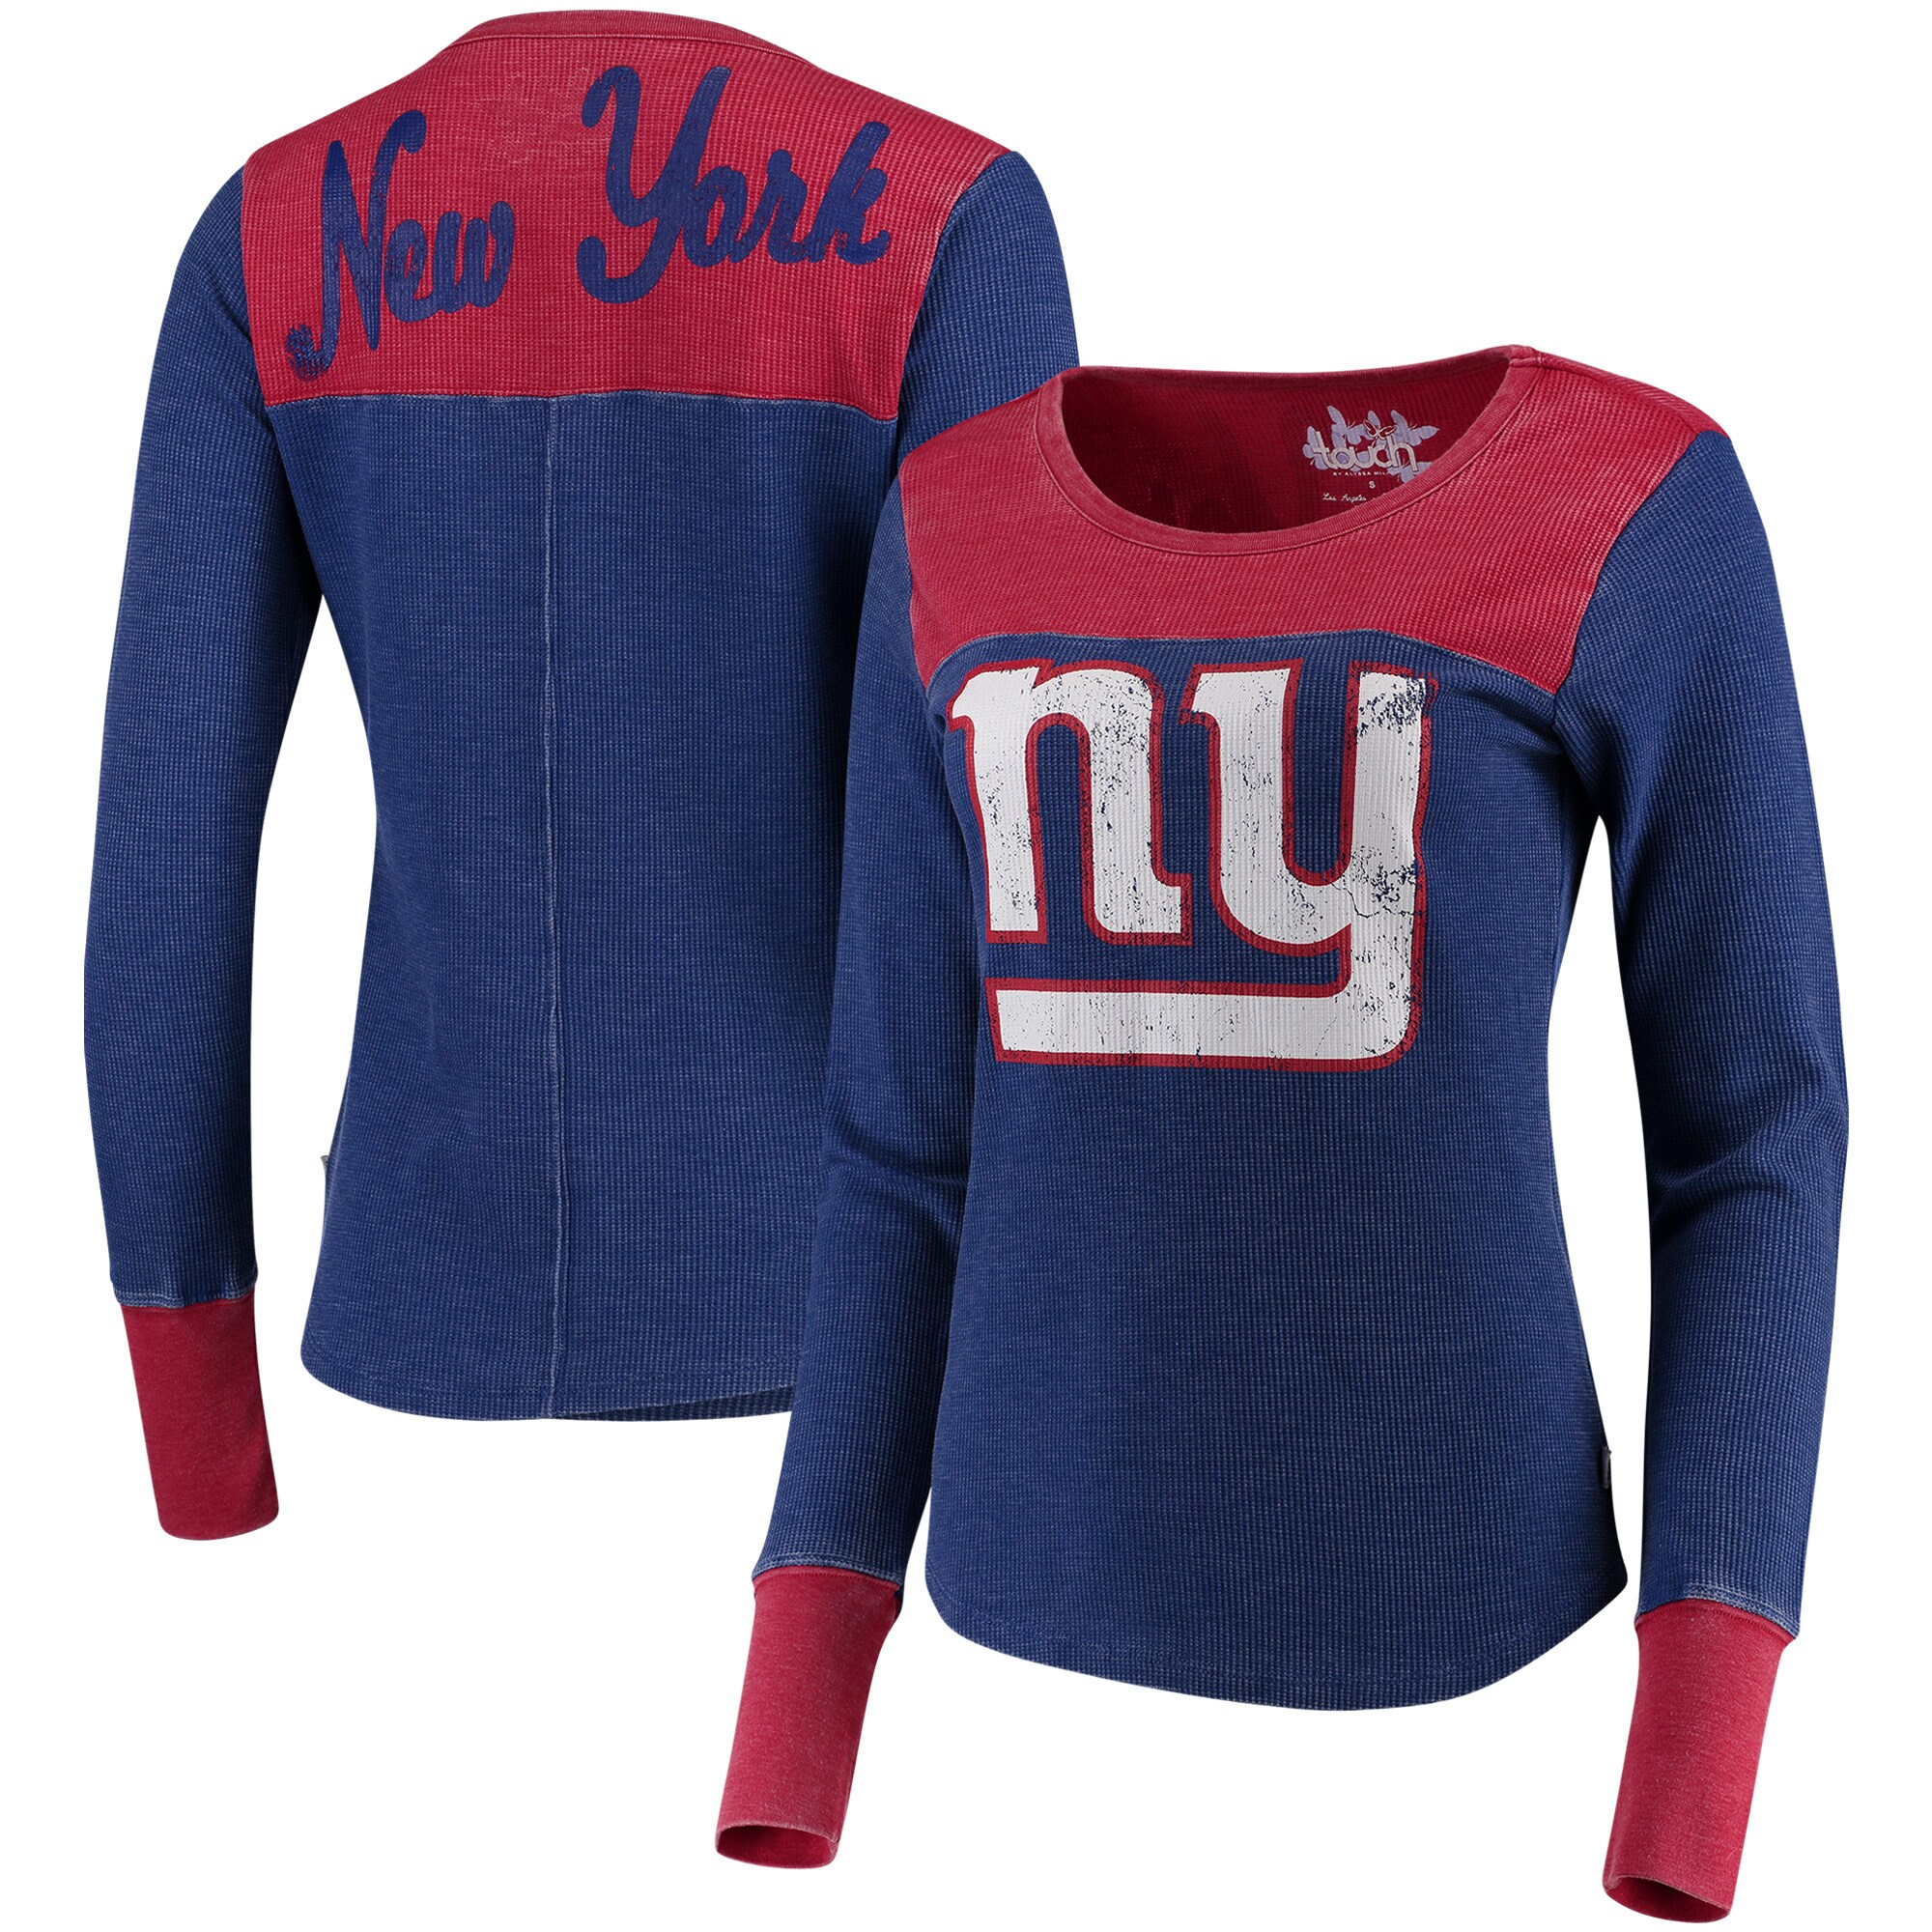 New York Giants Touch by Alyssa Milano Women's Blindside Long Sleeve Tri-Blend Thermal T-Shirt - Royal/Red